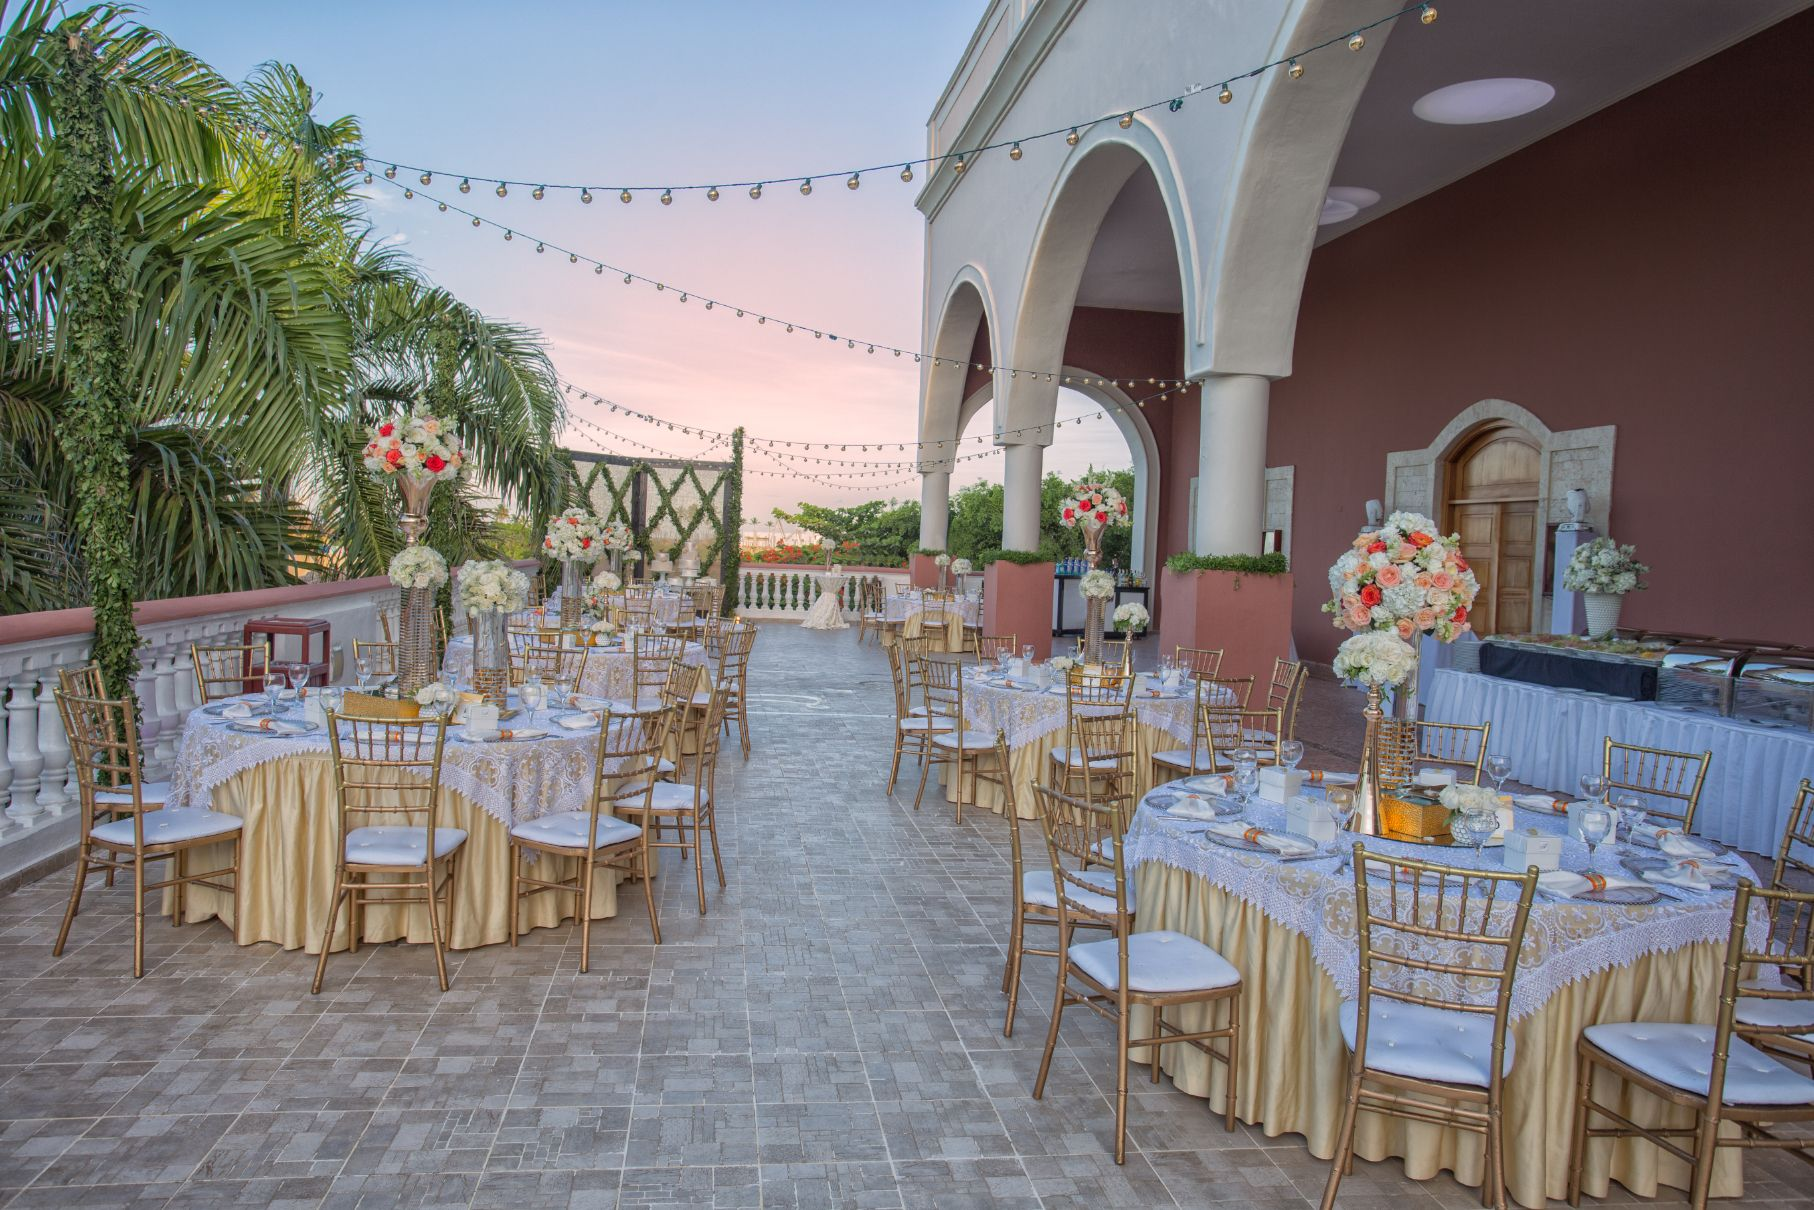 Himitsu terrace is the perfect location for your reception for 4758 setting sun terrace